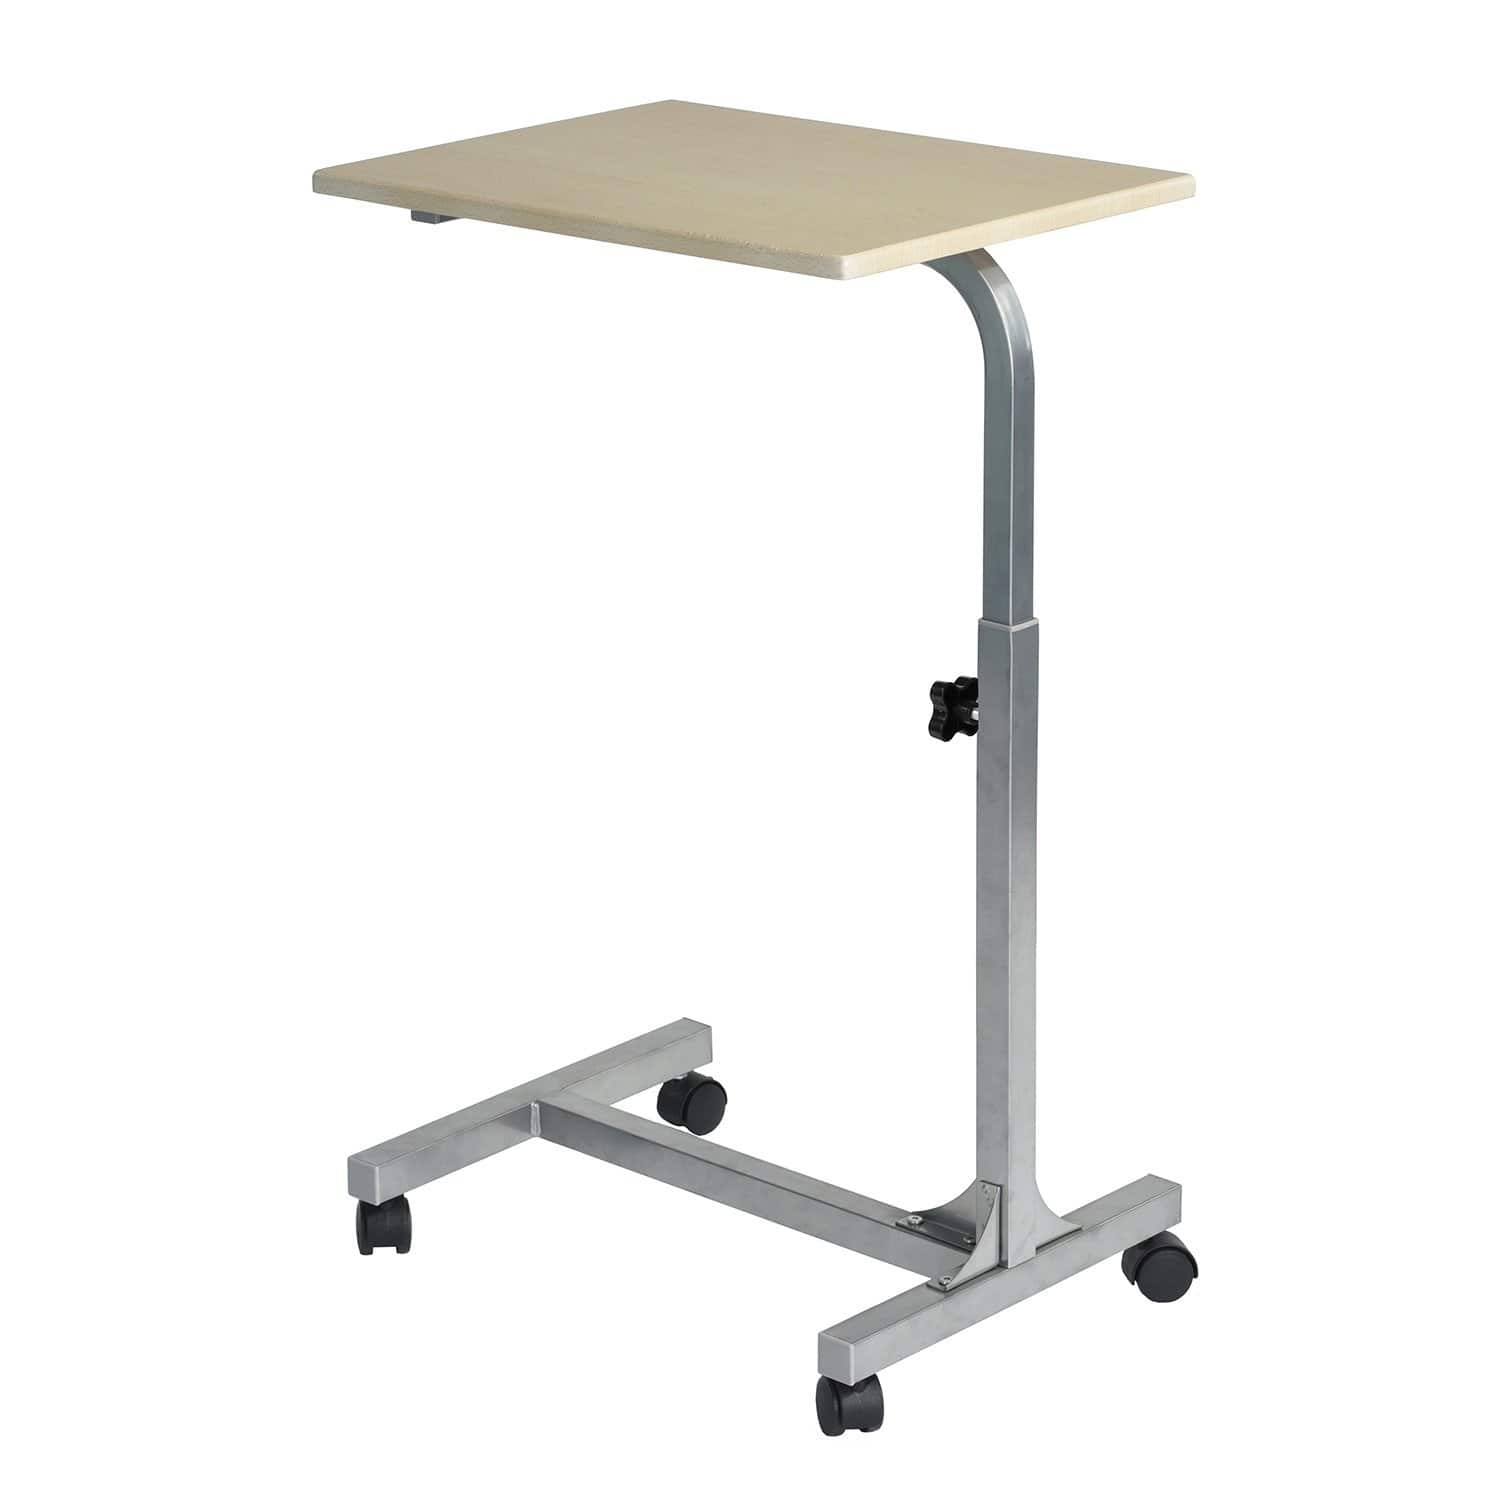 Coavas Laptop Desk Medical Adjustable Height Overbed Side Table at $26.06 AC+Amazon FS